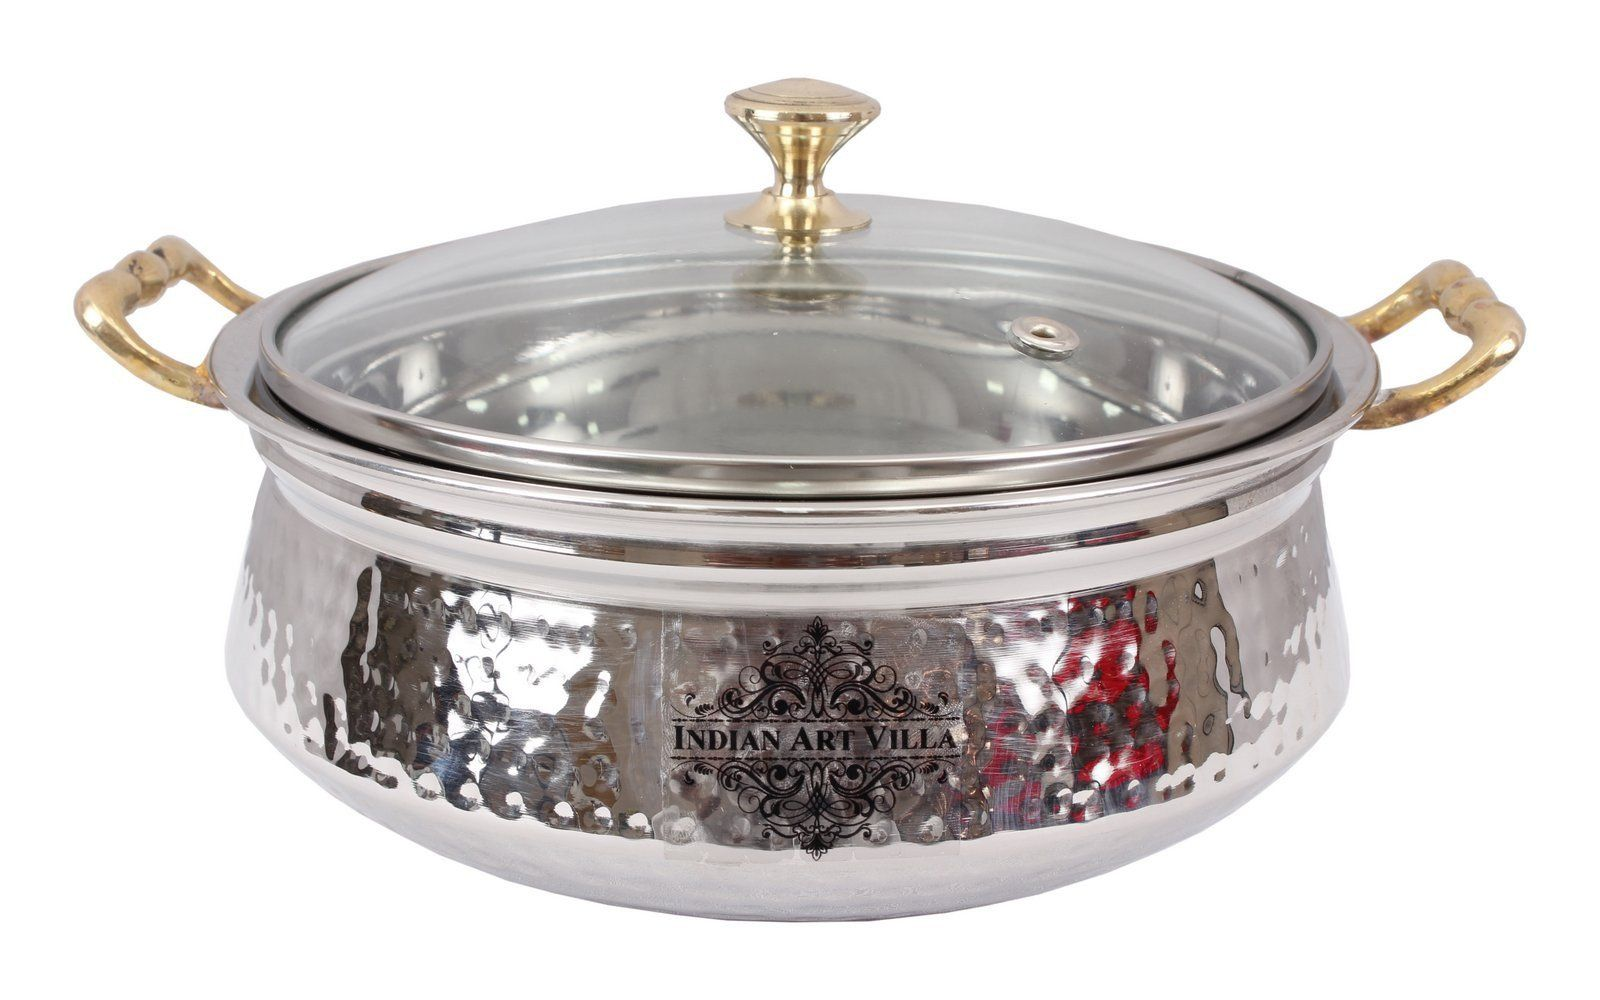 Stainless Steel Serving Handi Bowl with Glass Lid